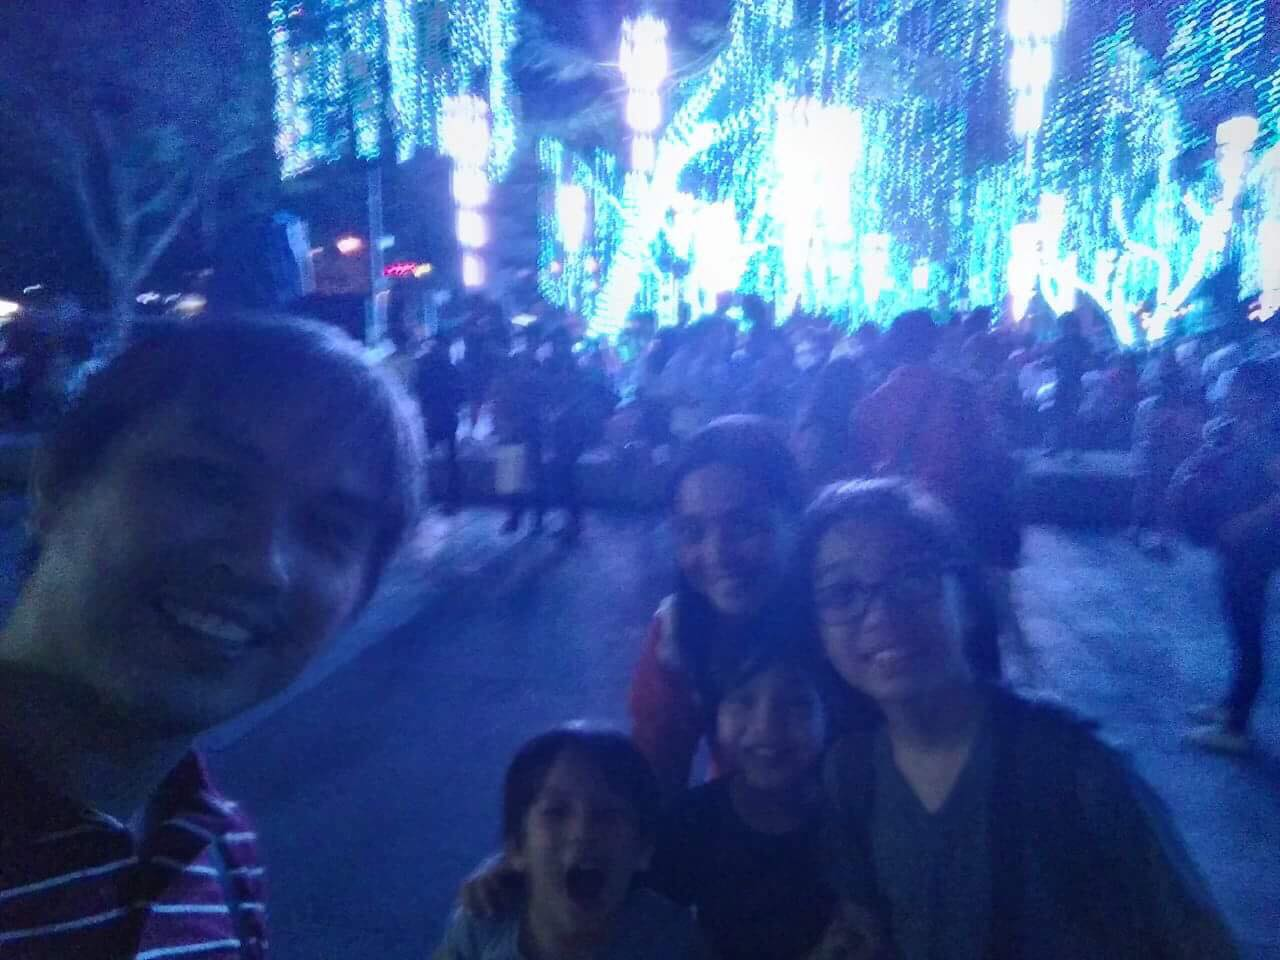 family-pic-lights